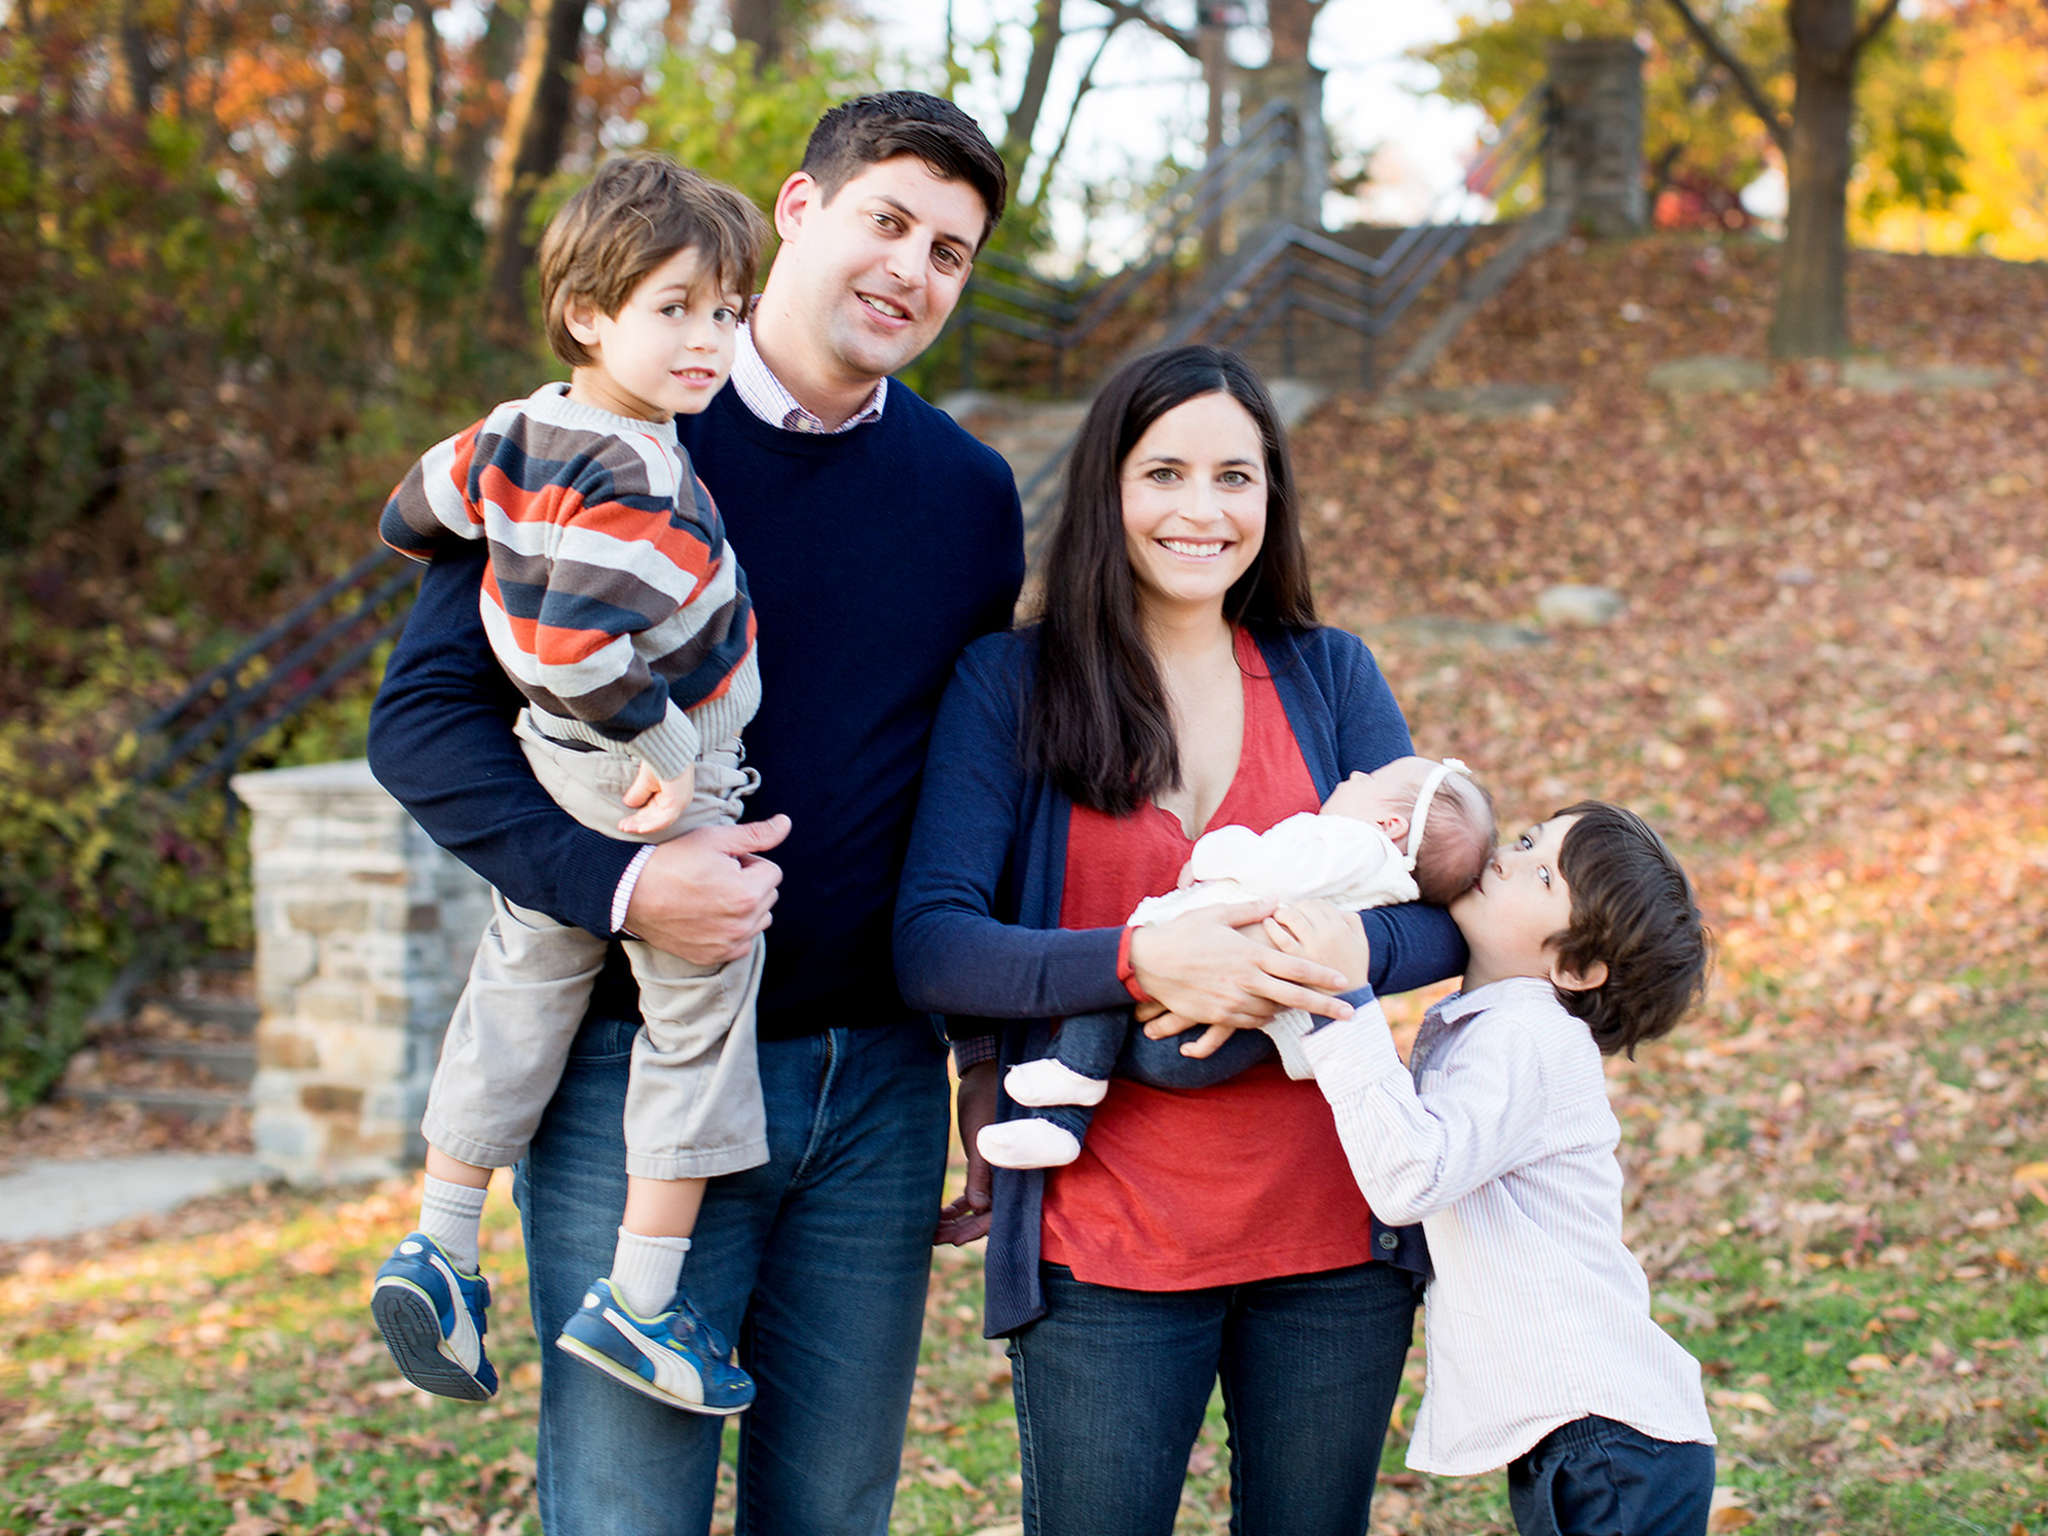 Dad Jason with Abram, mom Elyse with Margot, and big brother Holden.